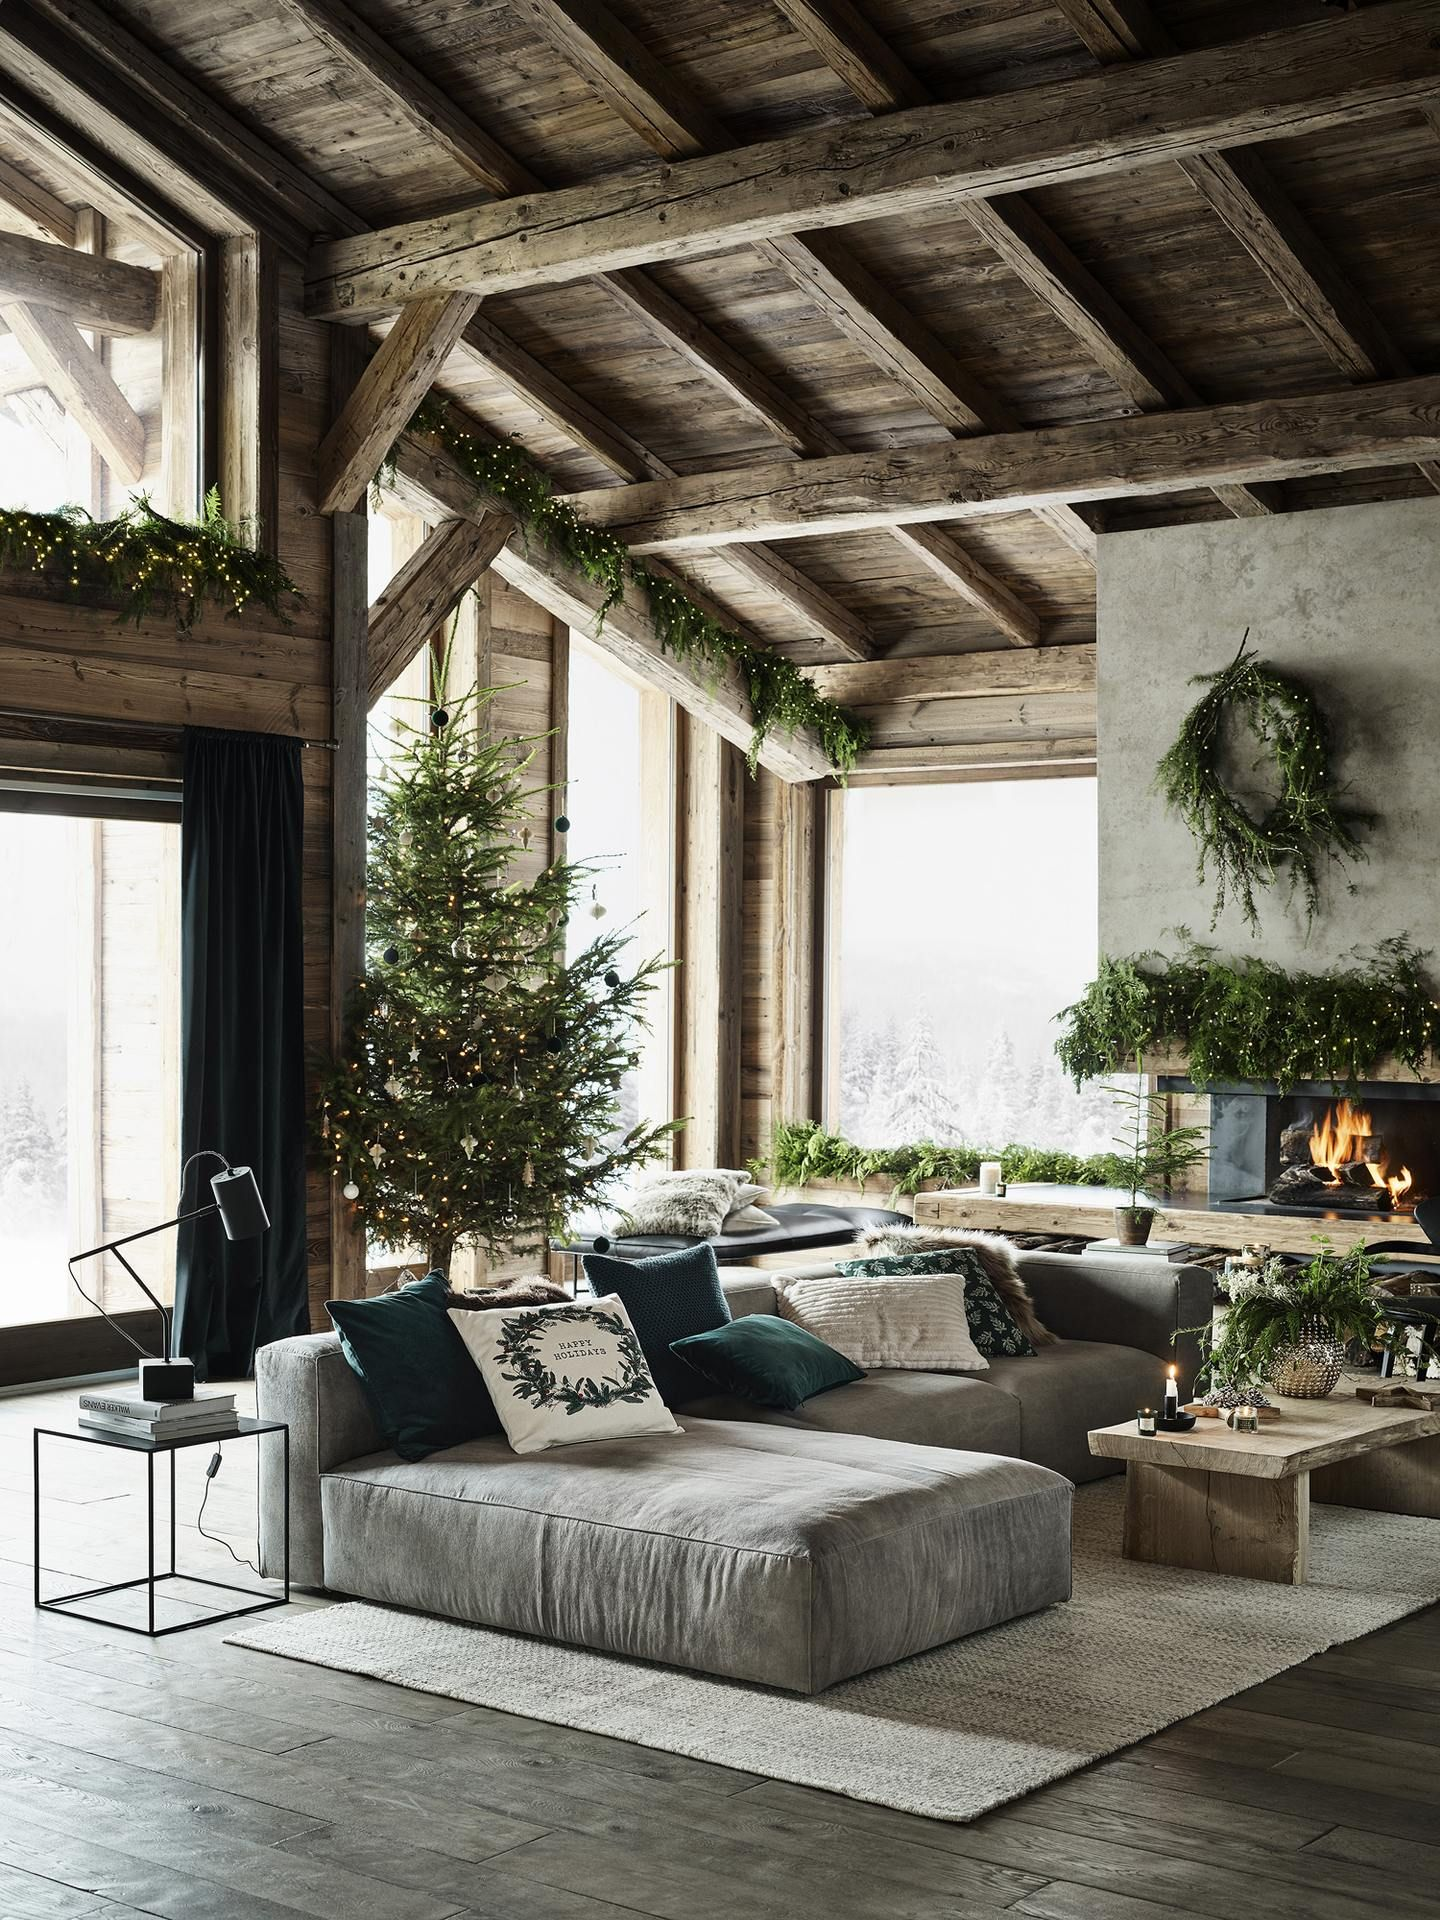 Christmas At H M Home In Two Different Styles Home Interior Design Home Interior Design